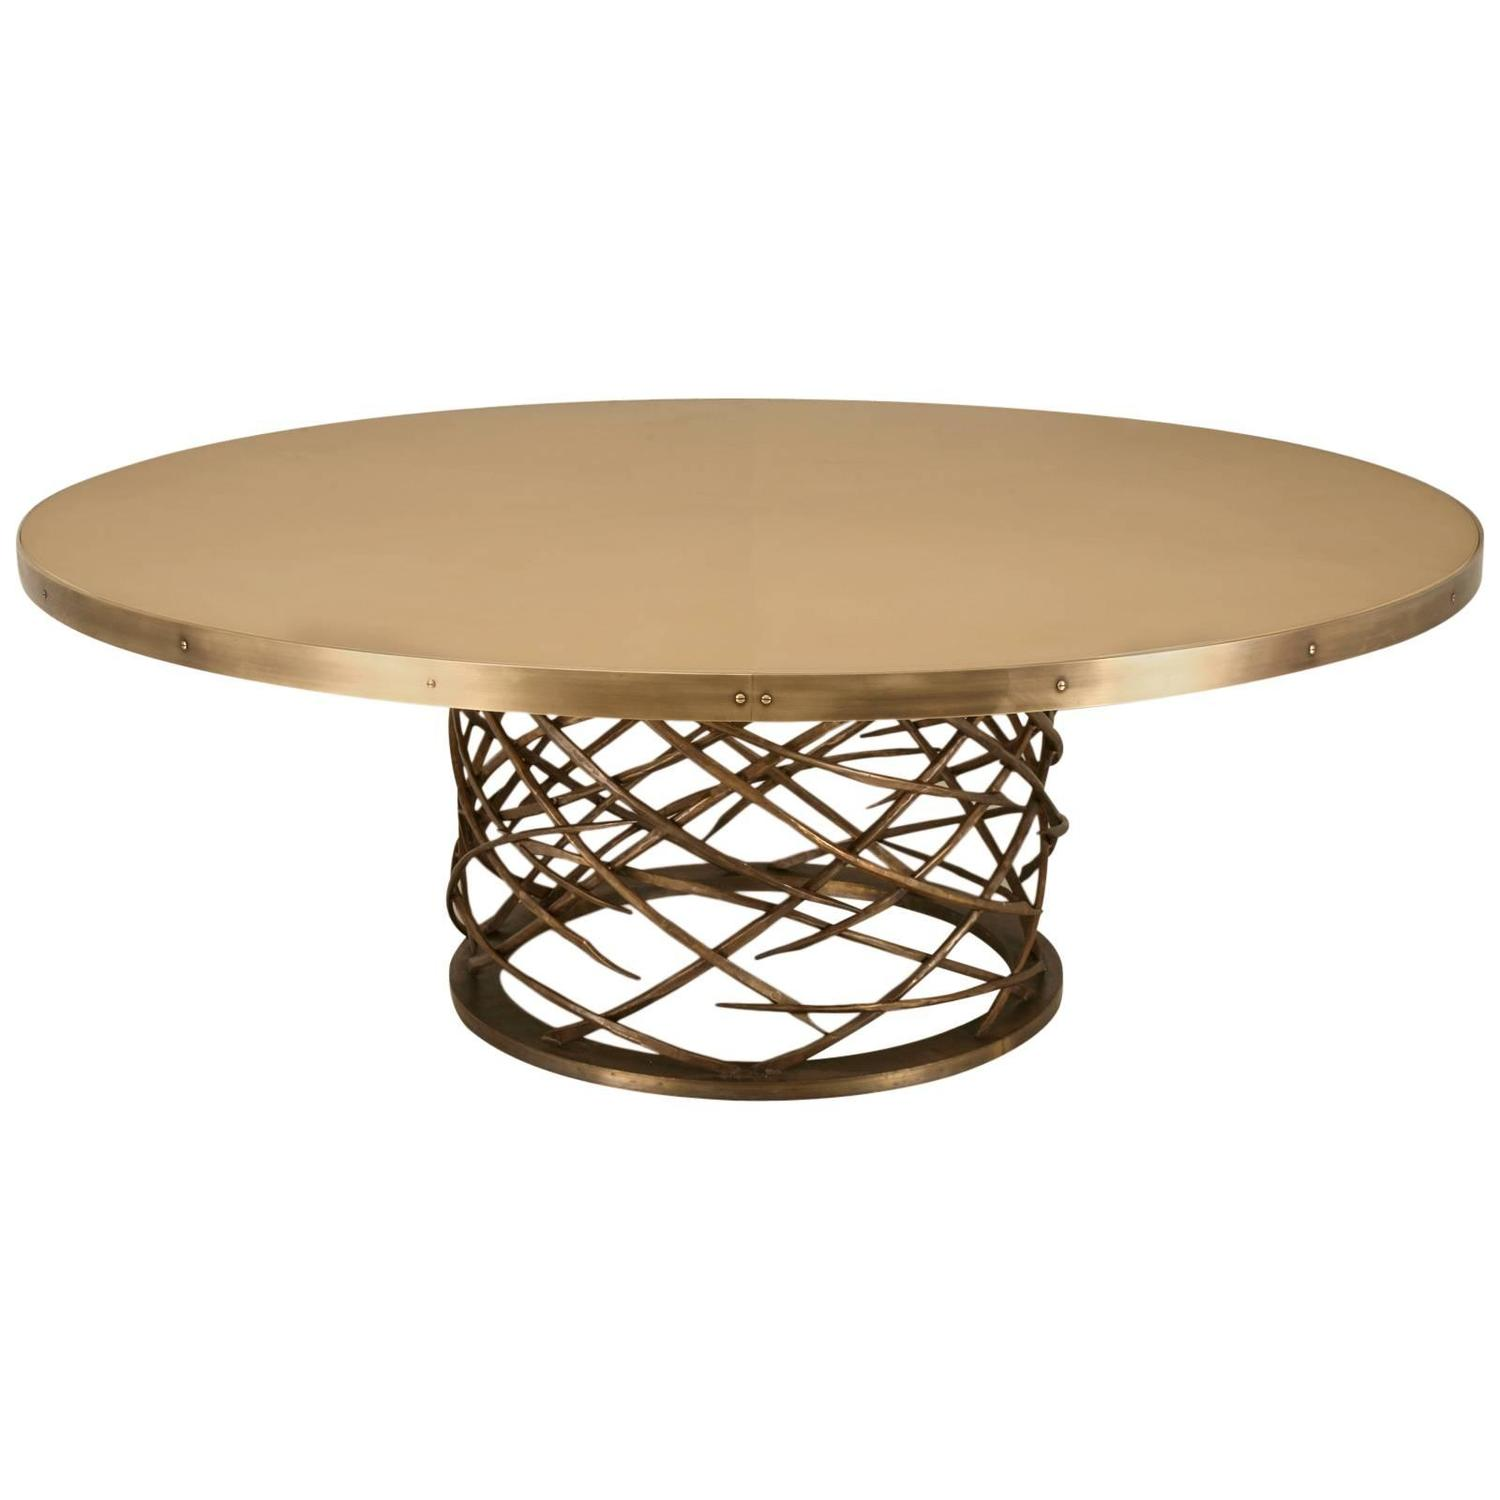 Custom Made Woven Solid Bronze Table Base For Sale at 1stdibs : 1069640z from www.1stdibs.com size 1500 x 1500 jpeg 65kB